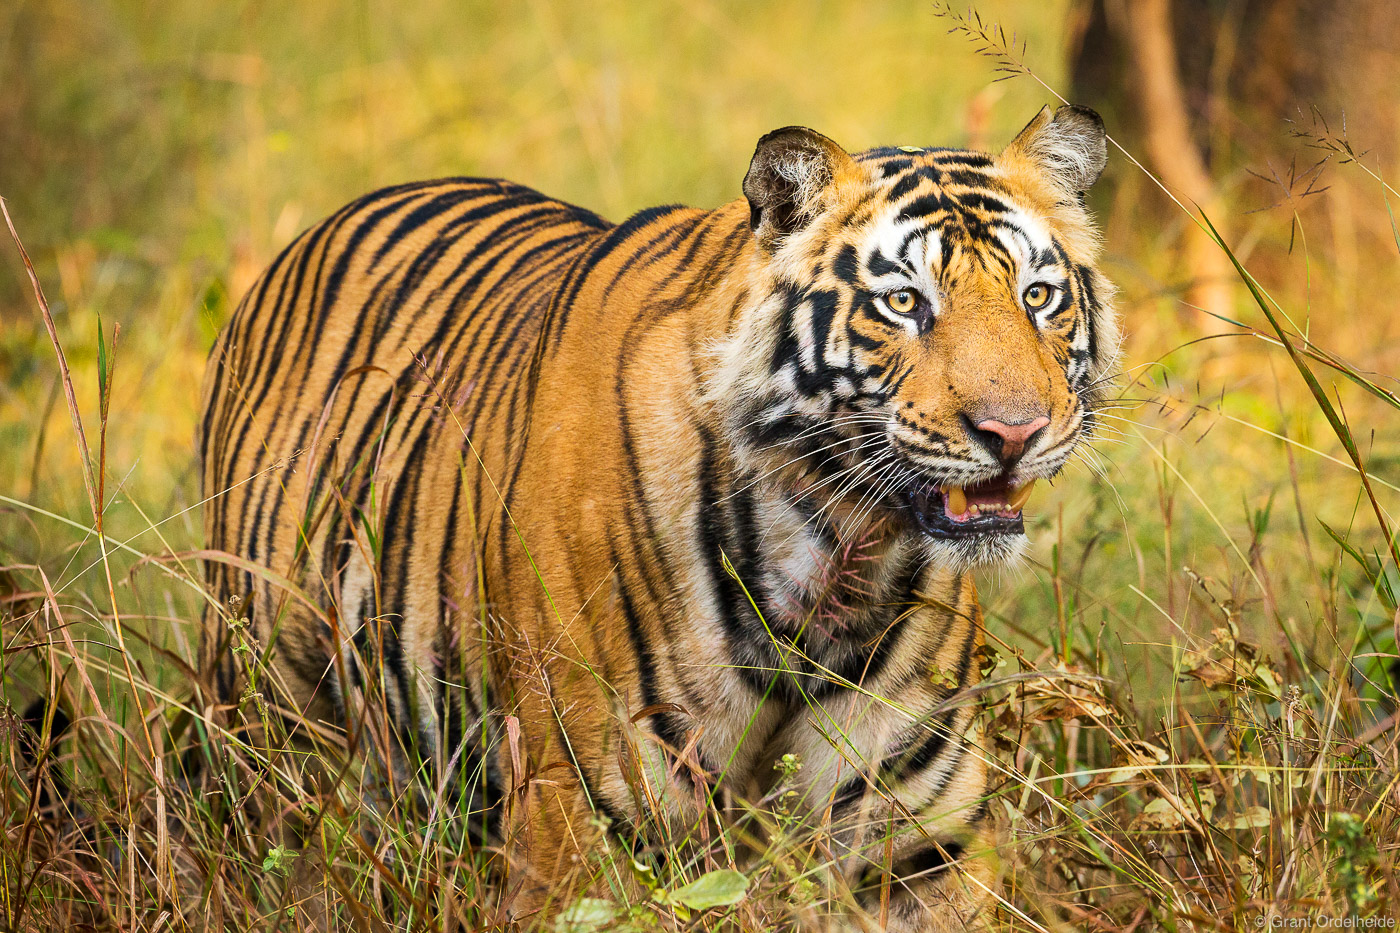 A wild and endangered Bengal tiger in India's Bandhavgarh National Park.